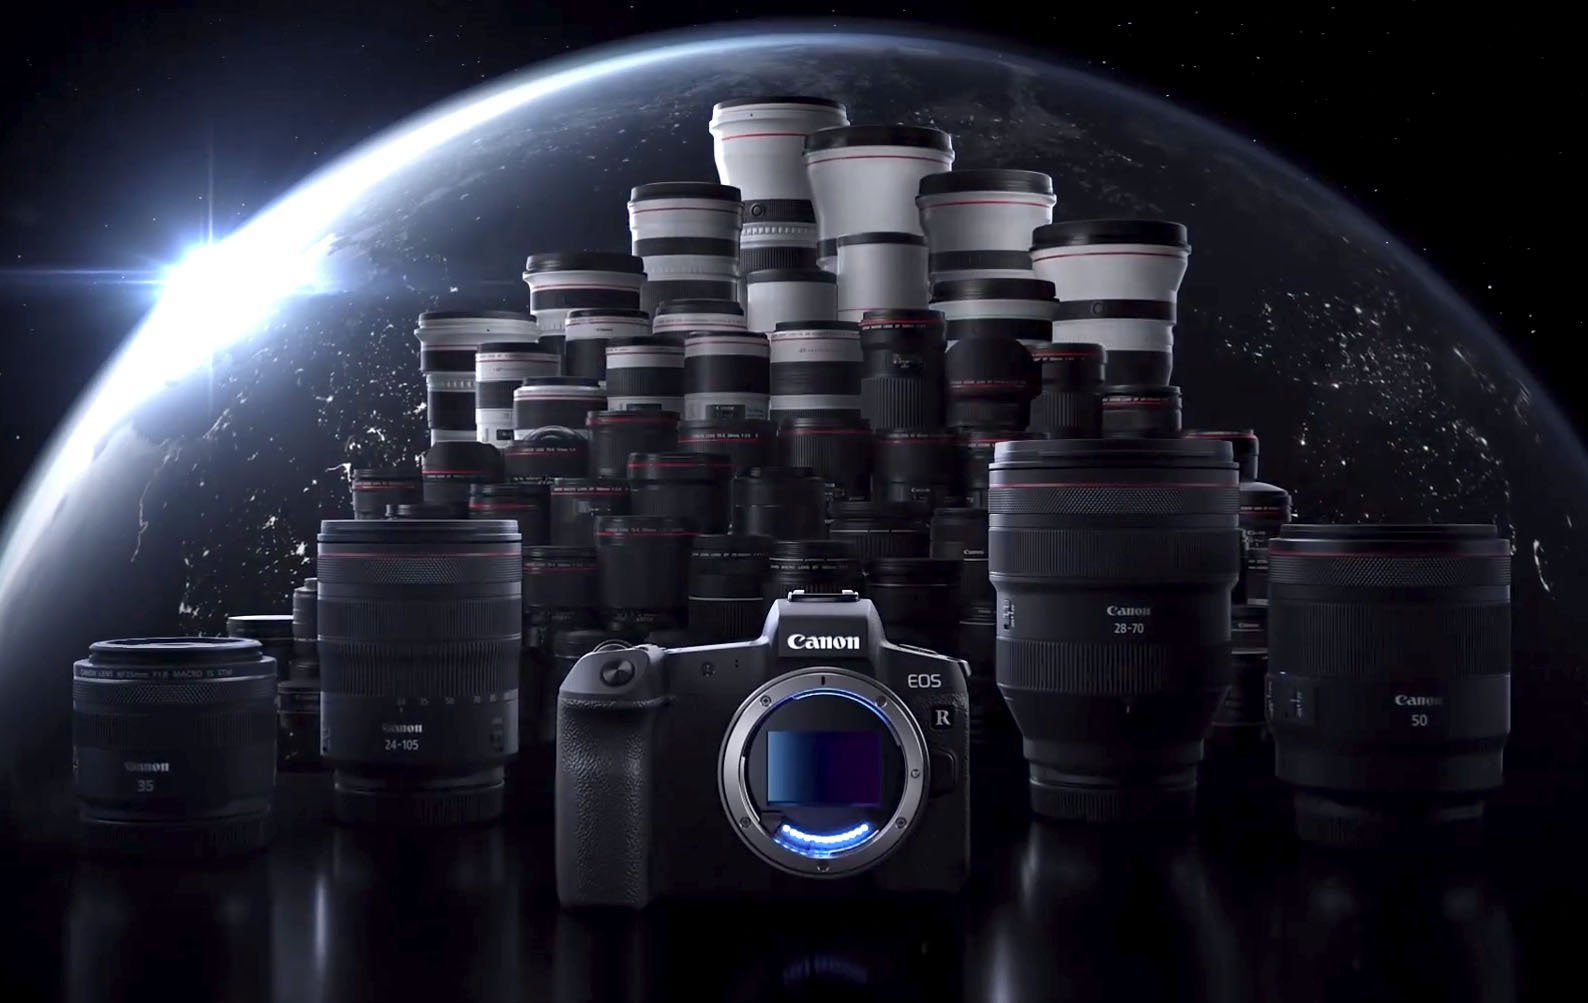 Canon finally unveil their first mirrorless full frame